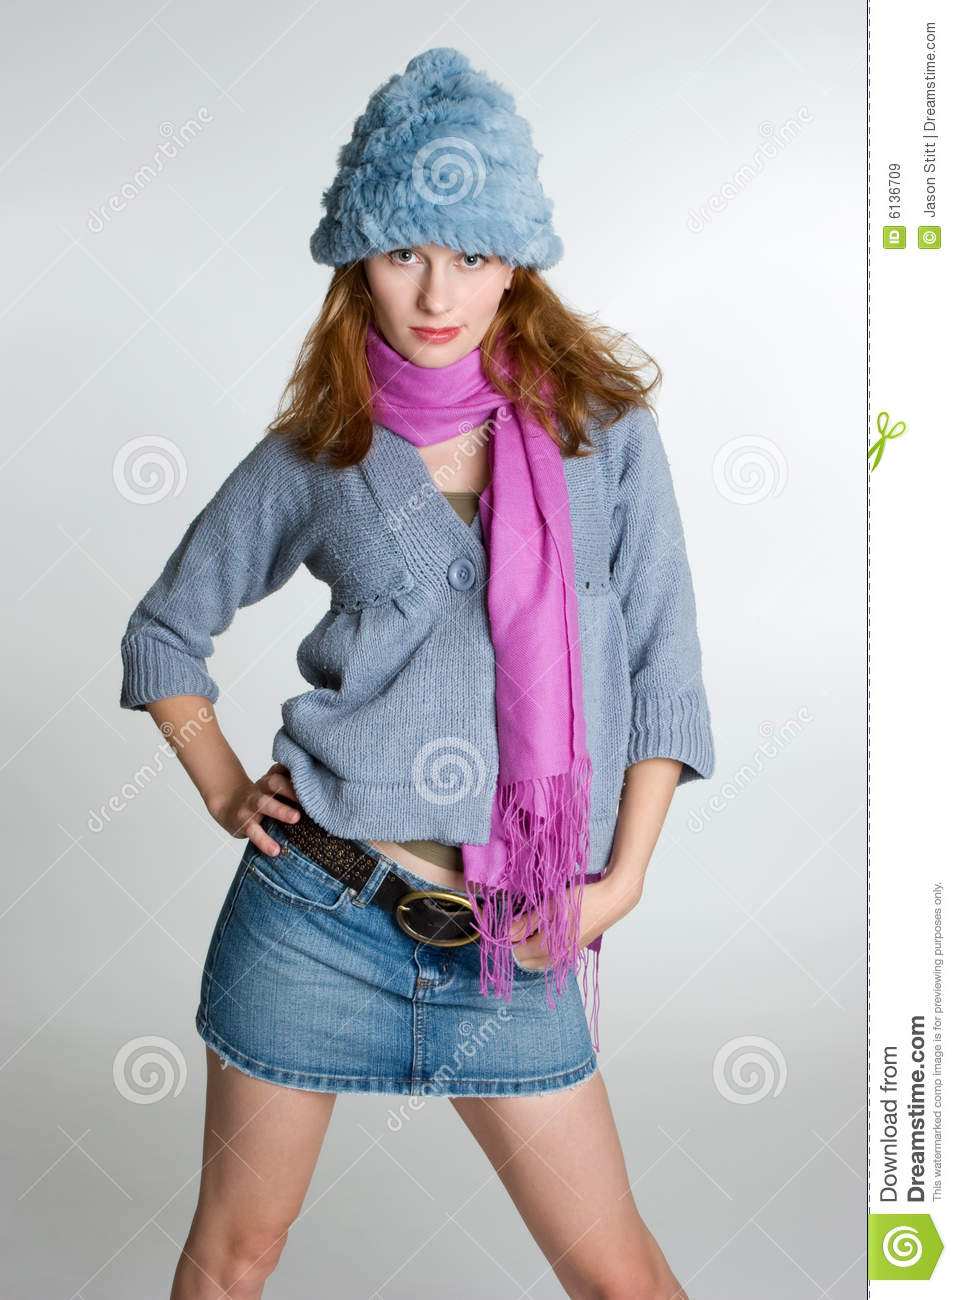 Female Fashion Model stock image. Image of female, gray ...